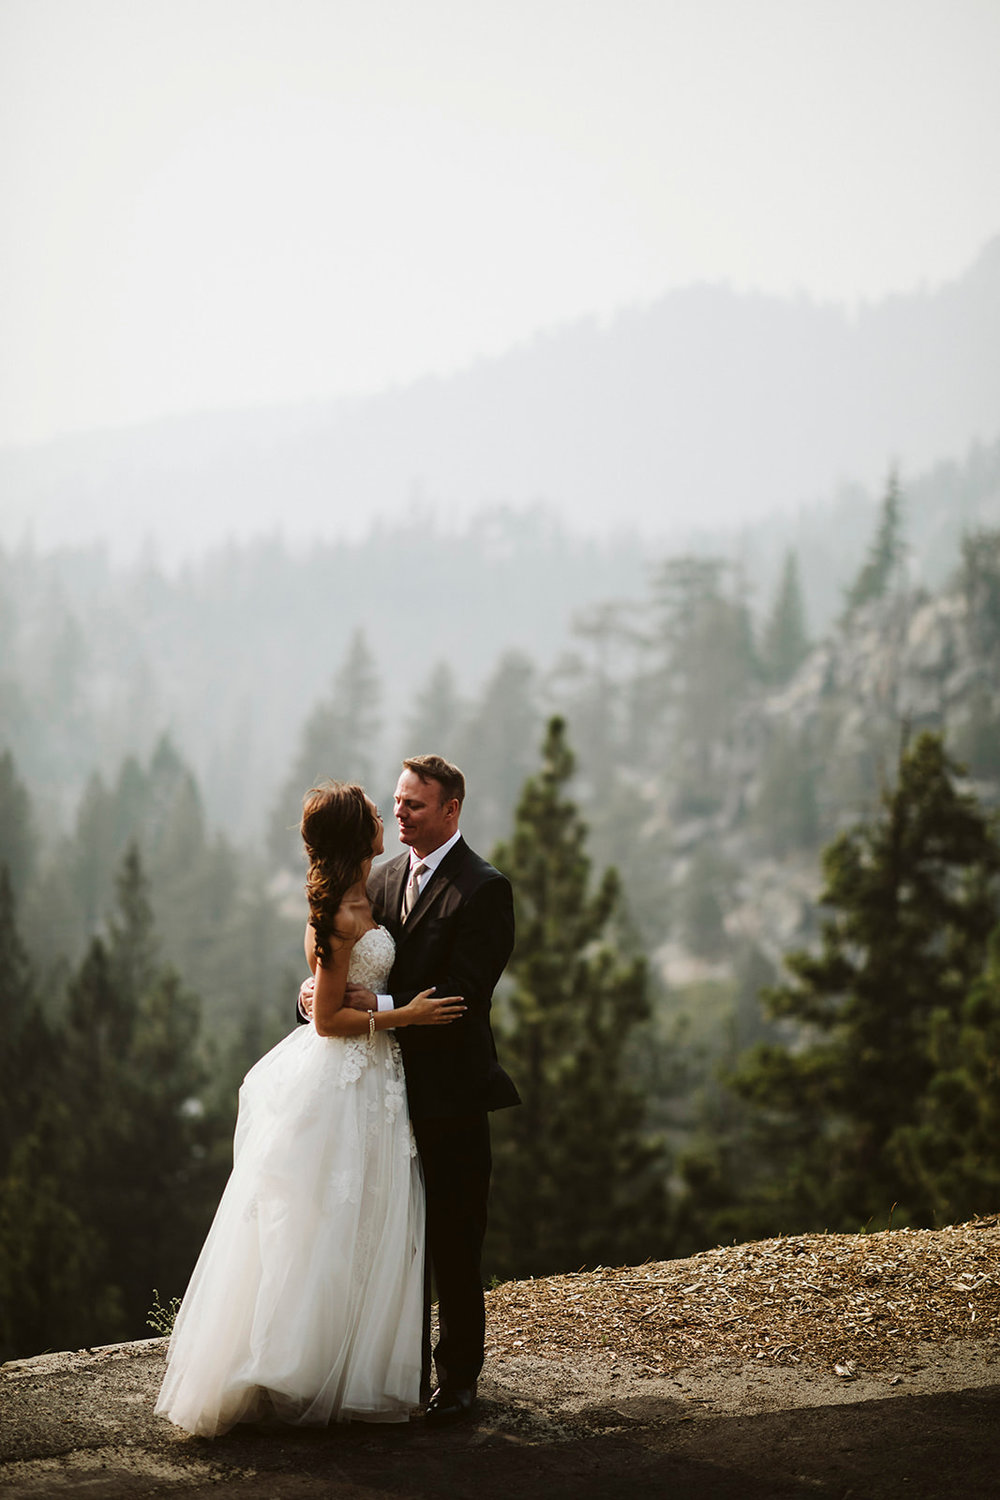 _P8A7593vild-vild photography-photography-wedding-wedding photography-tahoe-lake tahoe-lake tahoe wedding photographer-nevada wedding photographer-mountain wedding.jpg